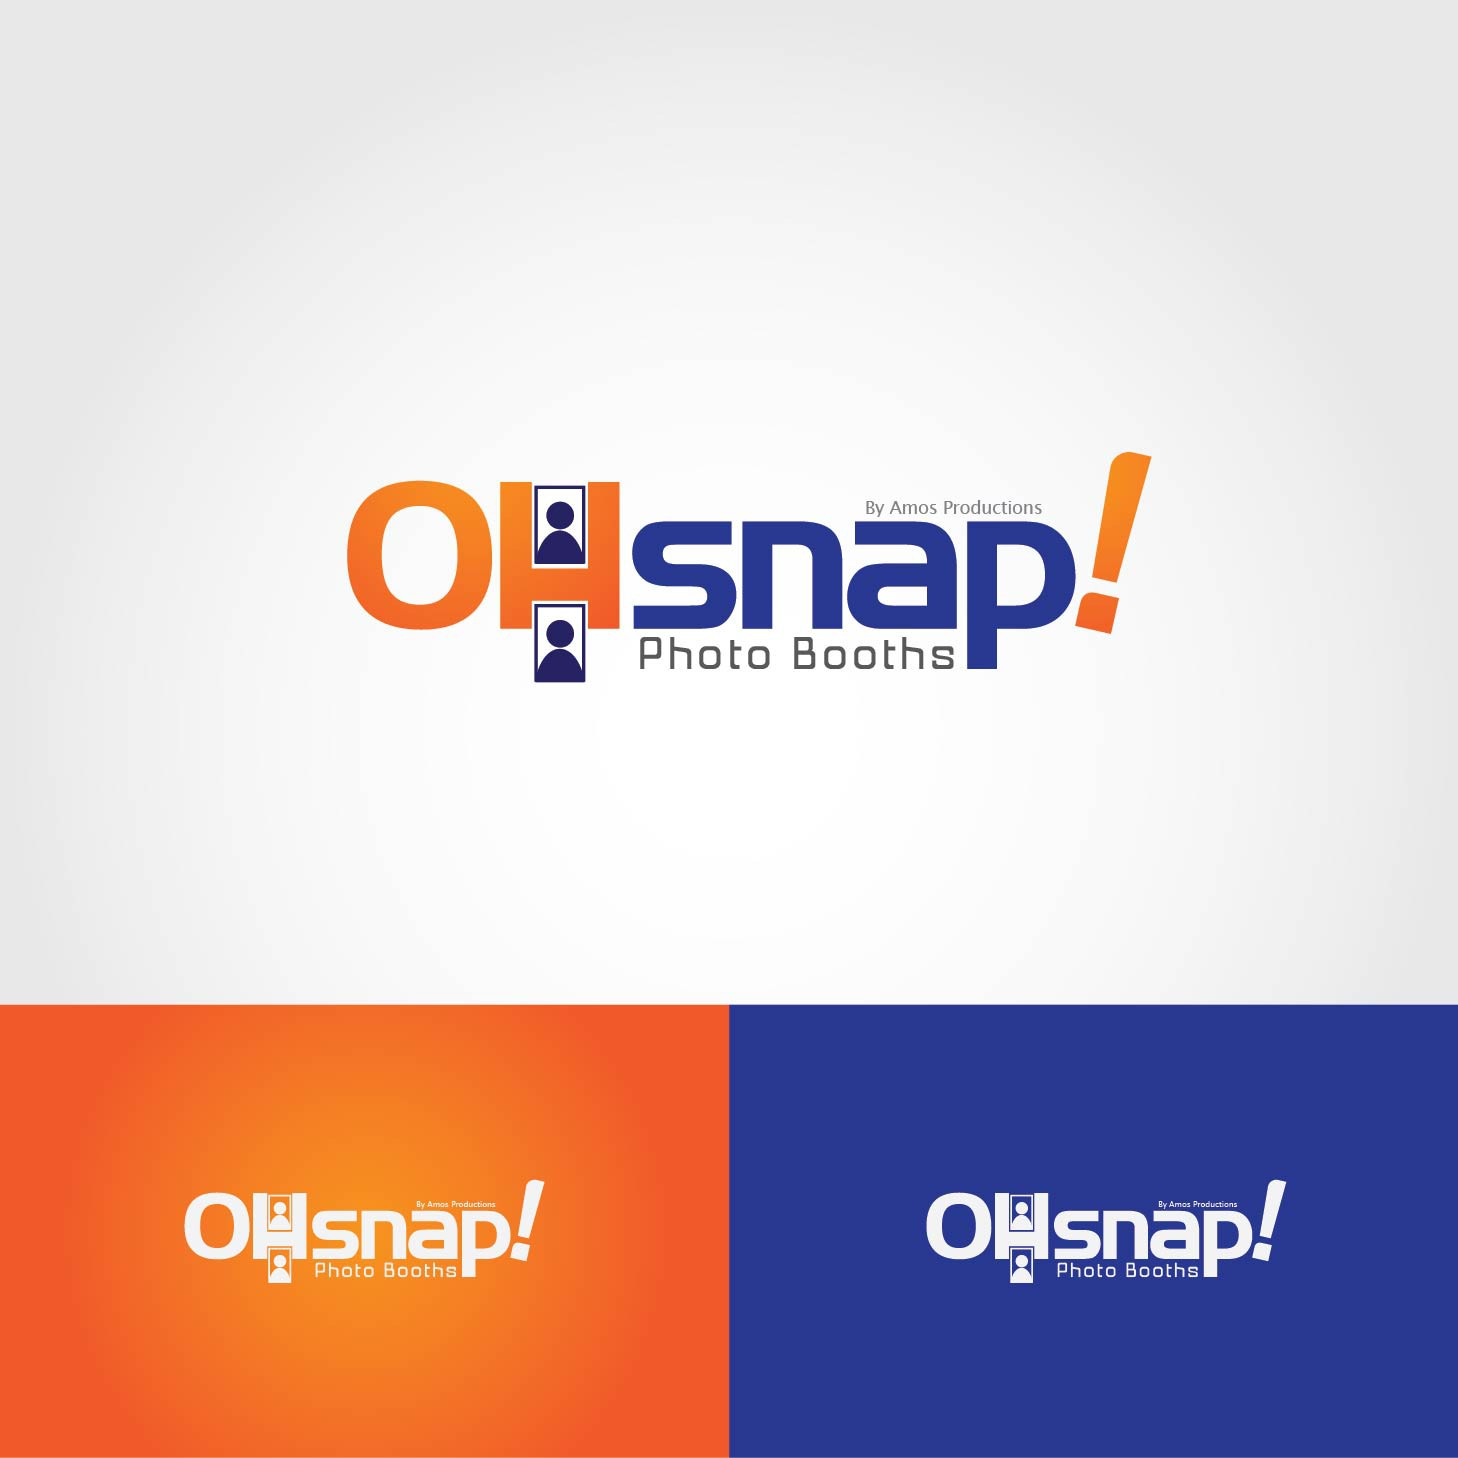 Help Oh Snap! Photo Booths with a new logo